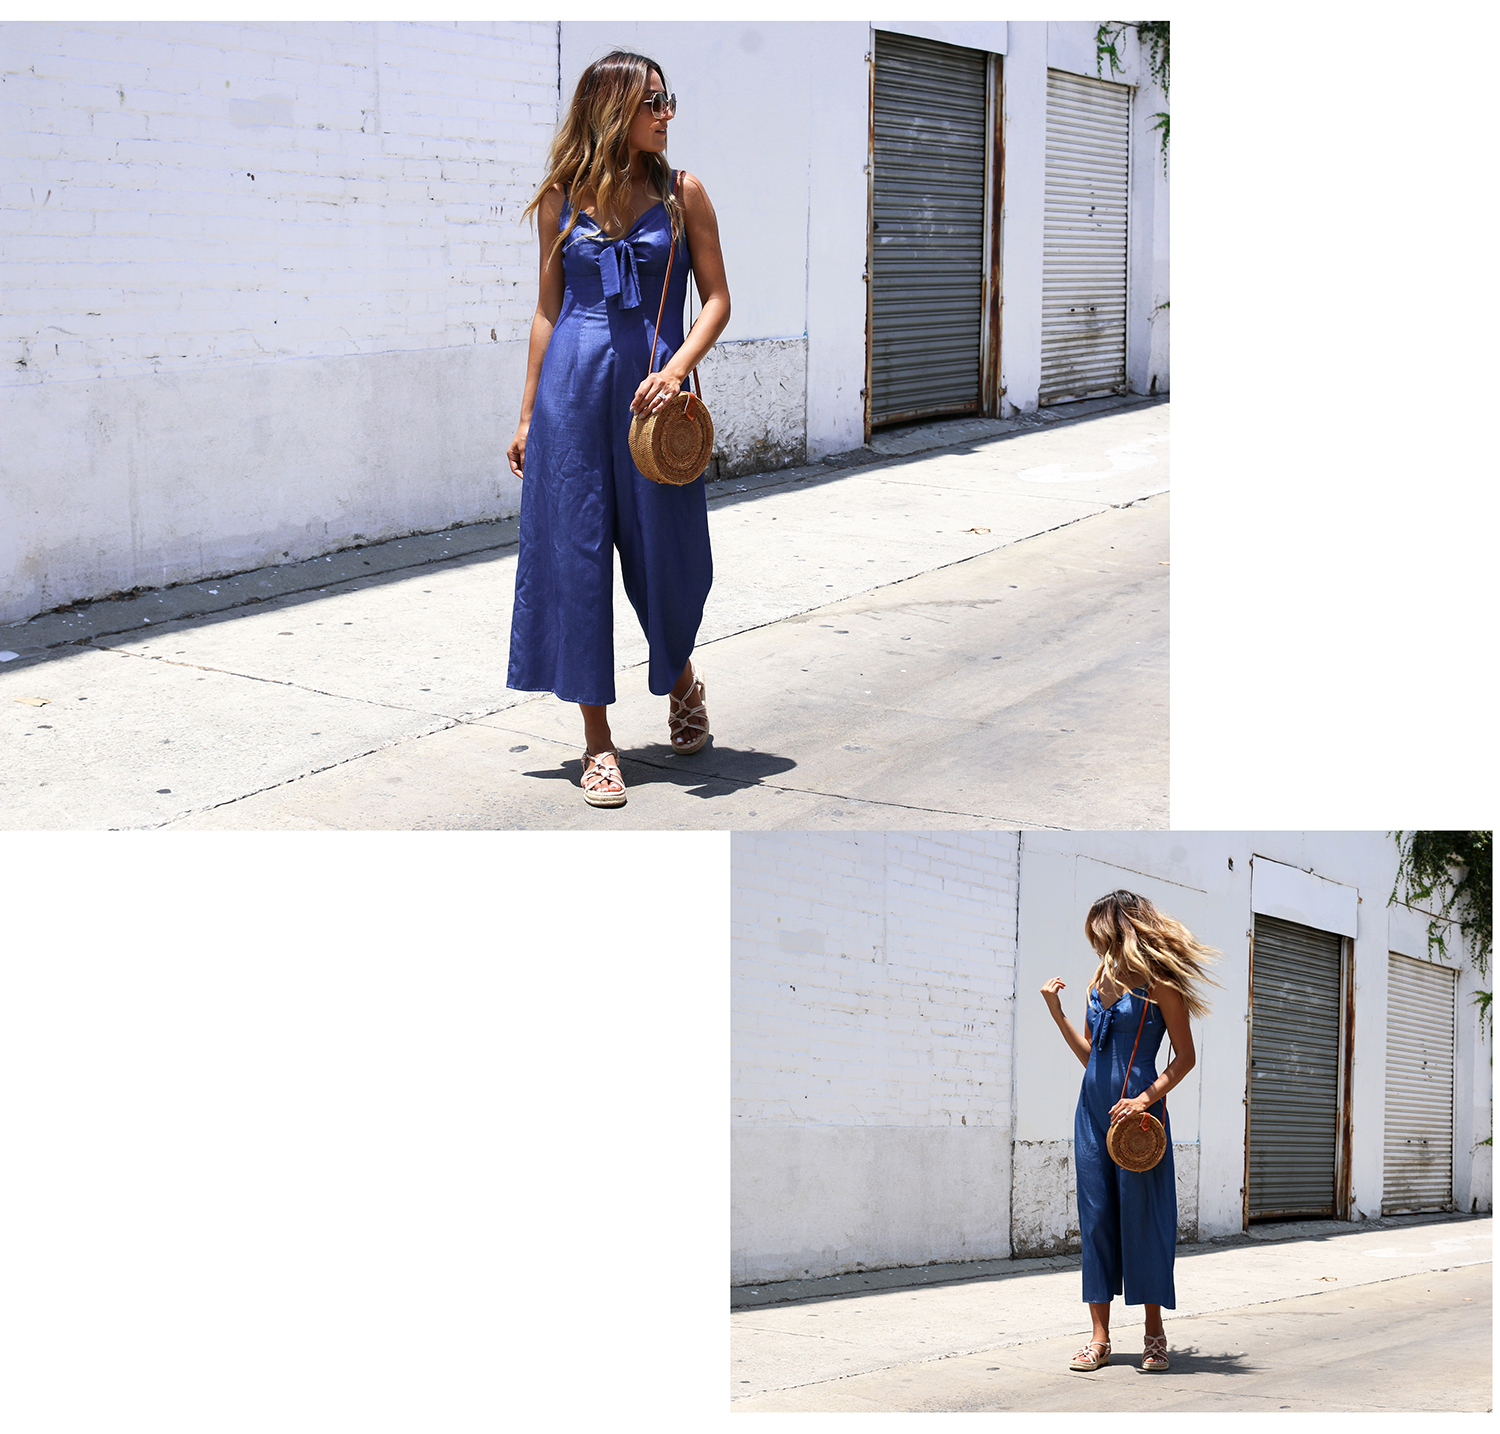 My Thoughts on Loop Giveaways, Loop Giveaways, Blogger giveaways, free, giveaways, bloggers, ootd, melrodstyle, chambray jumpsuit, posh square, whittier, la blogger, street style, instagram, social media, instagram giveaways, trending , etsy